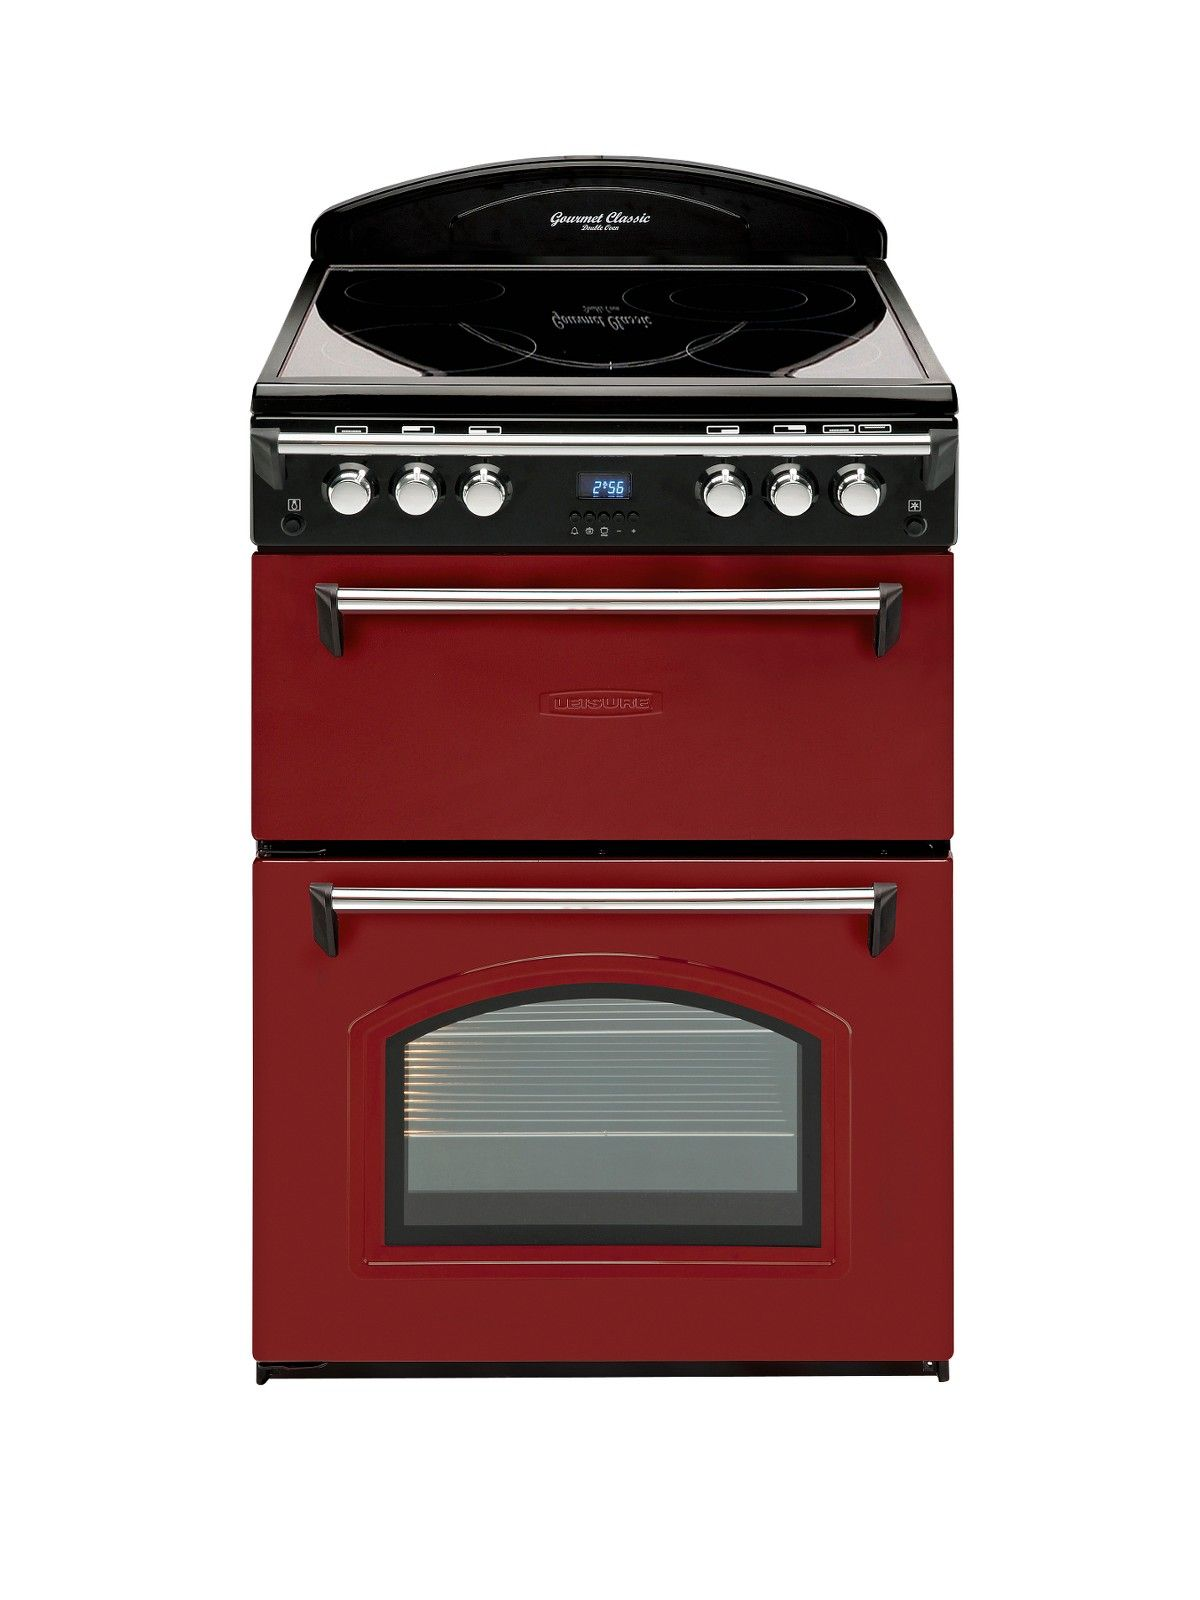 Official Littlewoods Site Online Shopping Department Store For Women S Men S Kids Clothing And More Gas Cooker Freestanding Cooker Ceramic Hobs